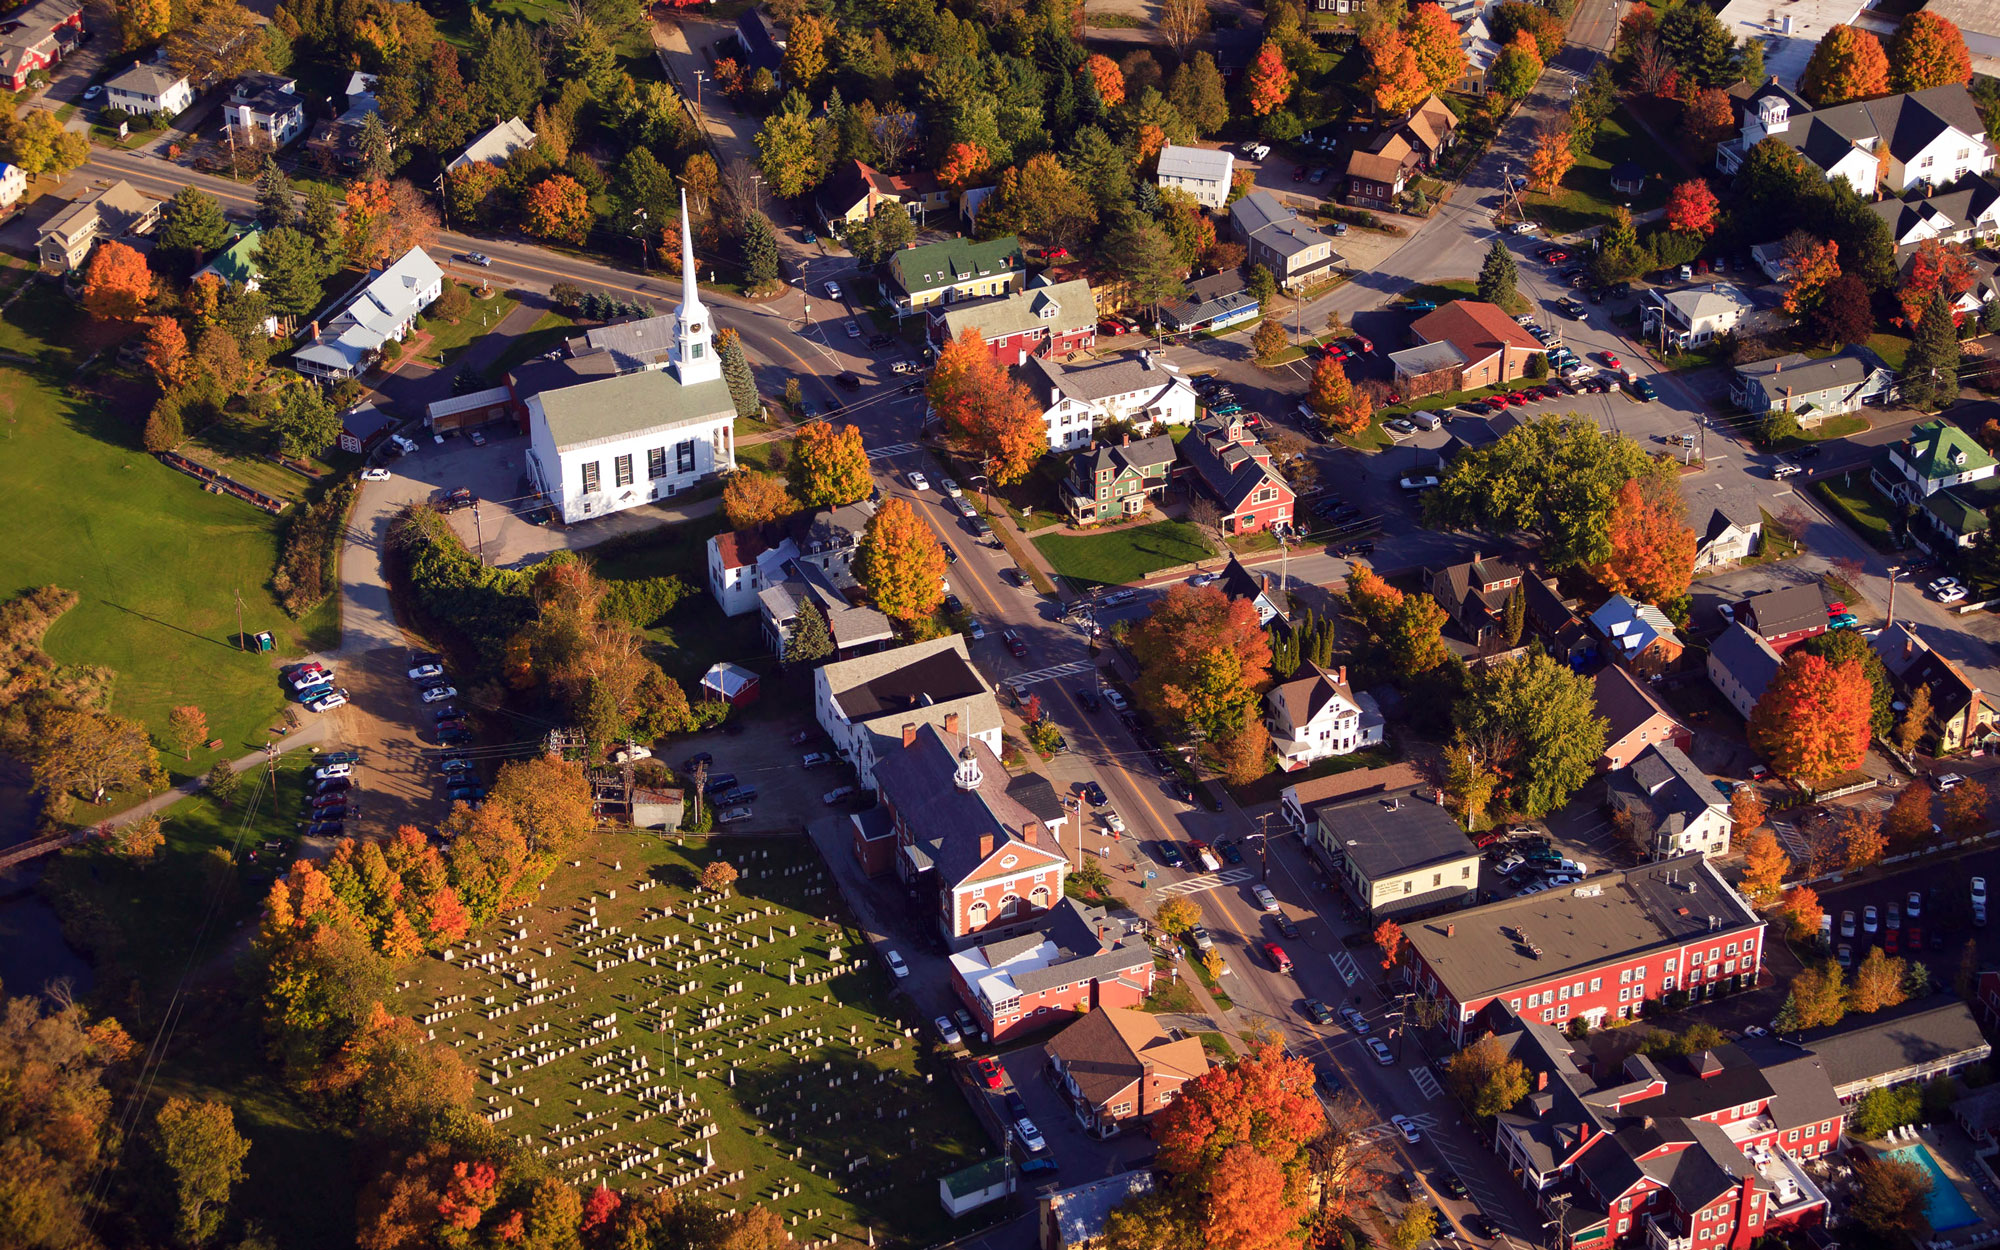 America's Best Towns for Halloween: Stowe